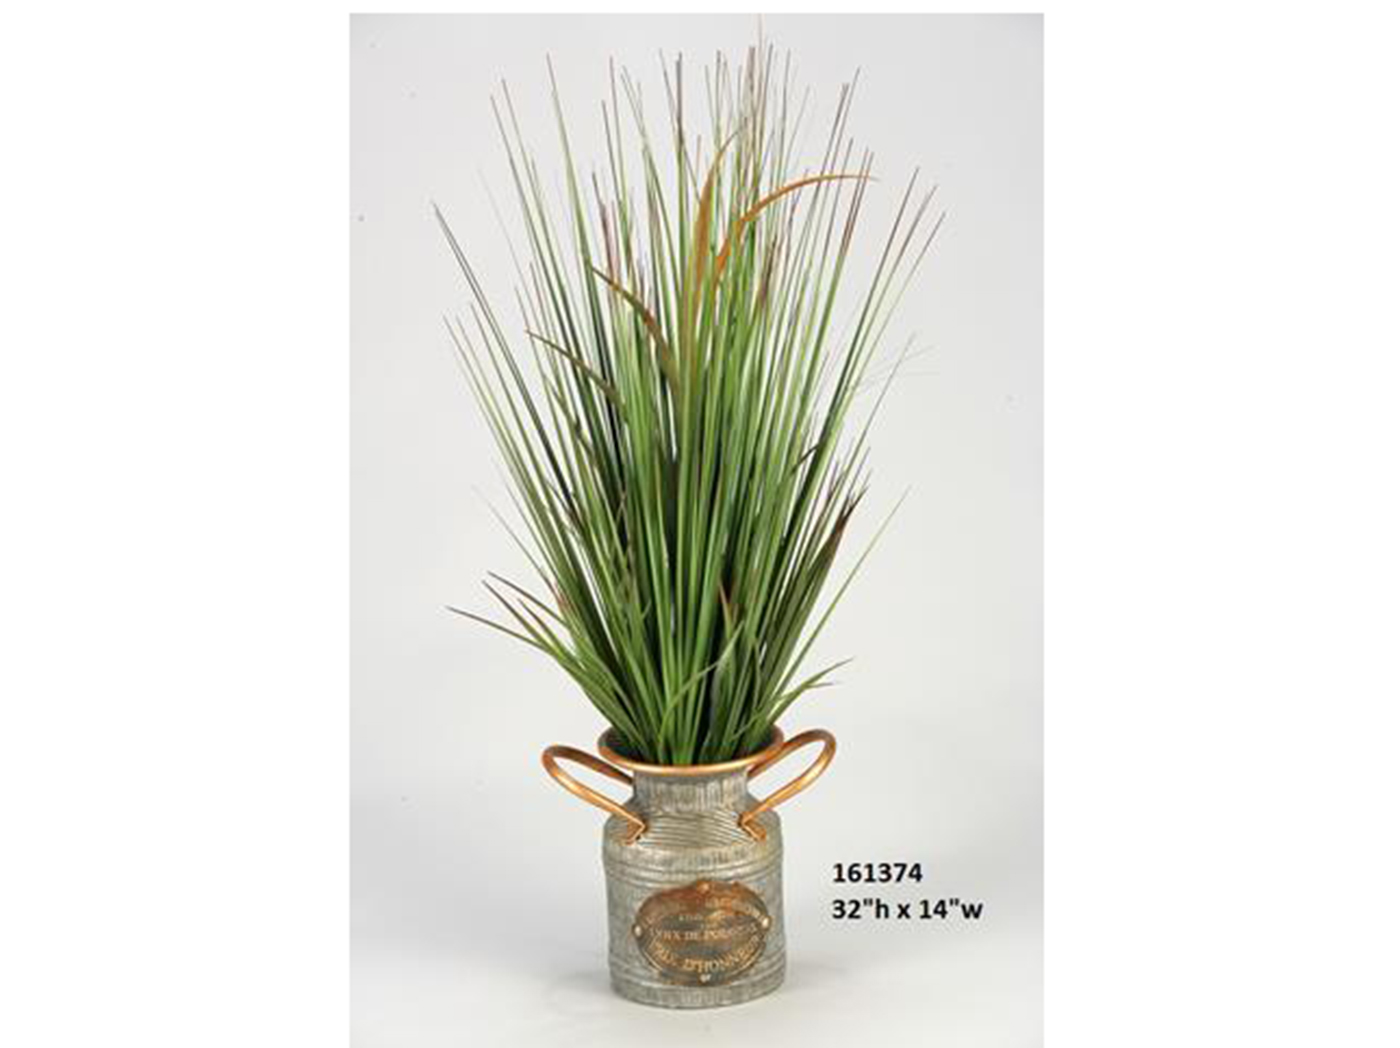 "Onion Grass in Ceramic Planter 14""W x 32""H"